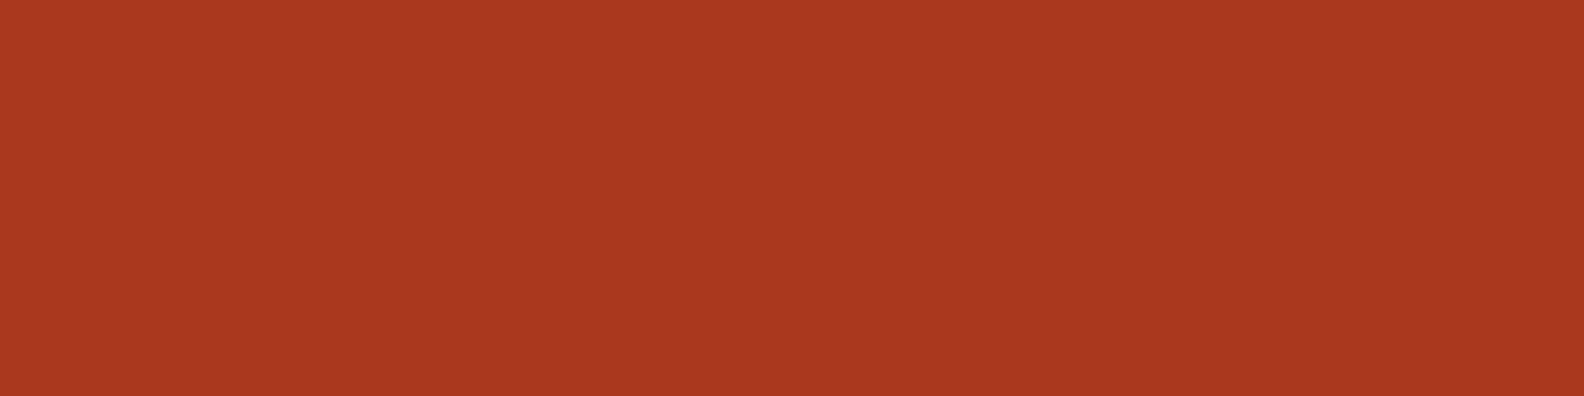 1584x396 Chinese Red Solid Color Background